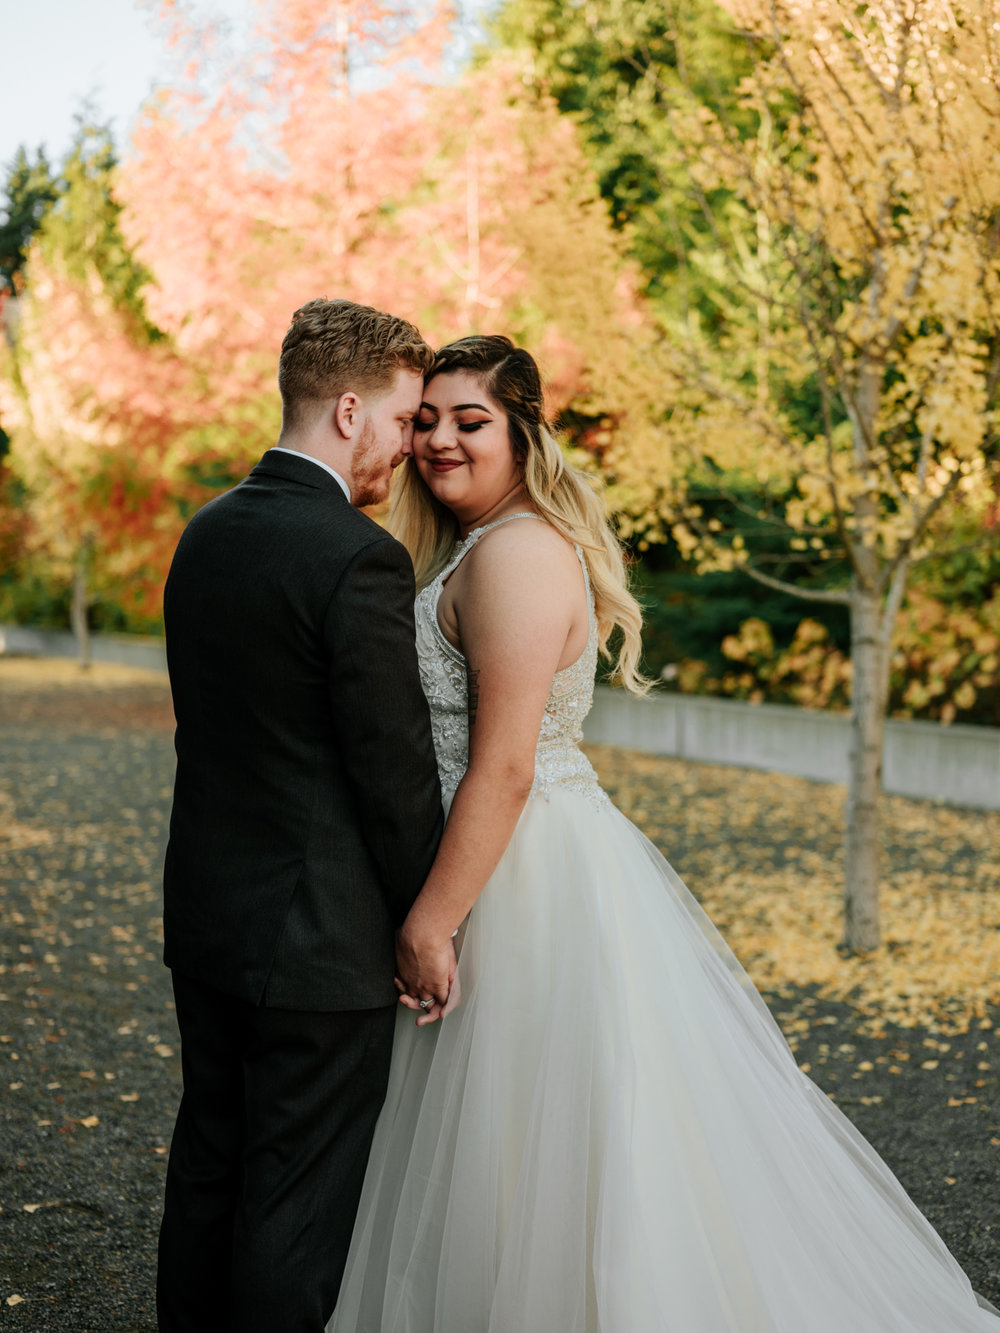 Stolen Glimpses Seattle Wedding Photographers 27.jpg